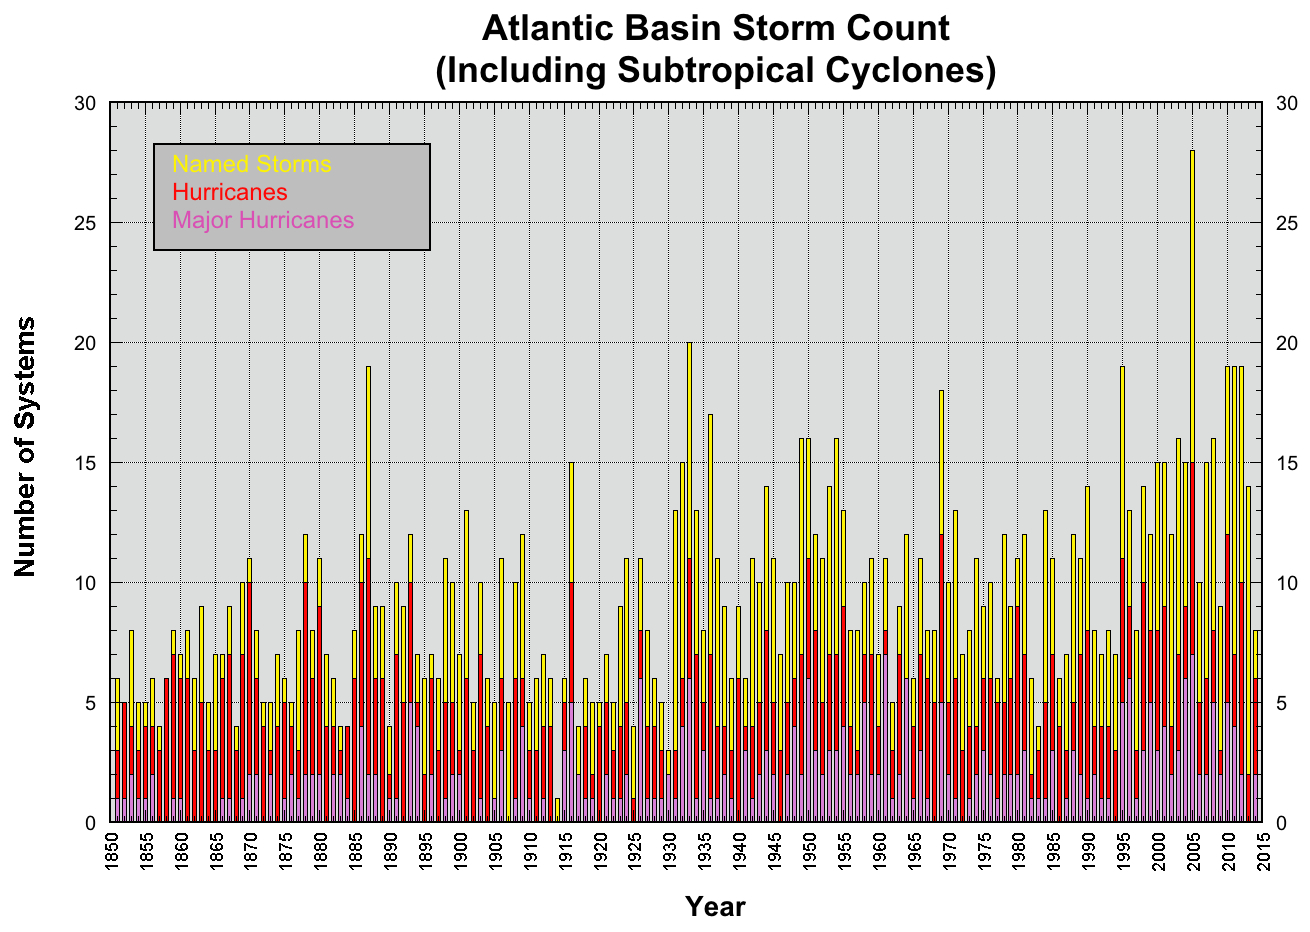 Atlantic Basin Storm Count Since 1850